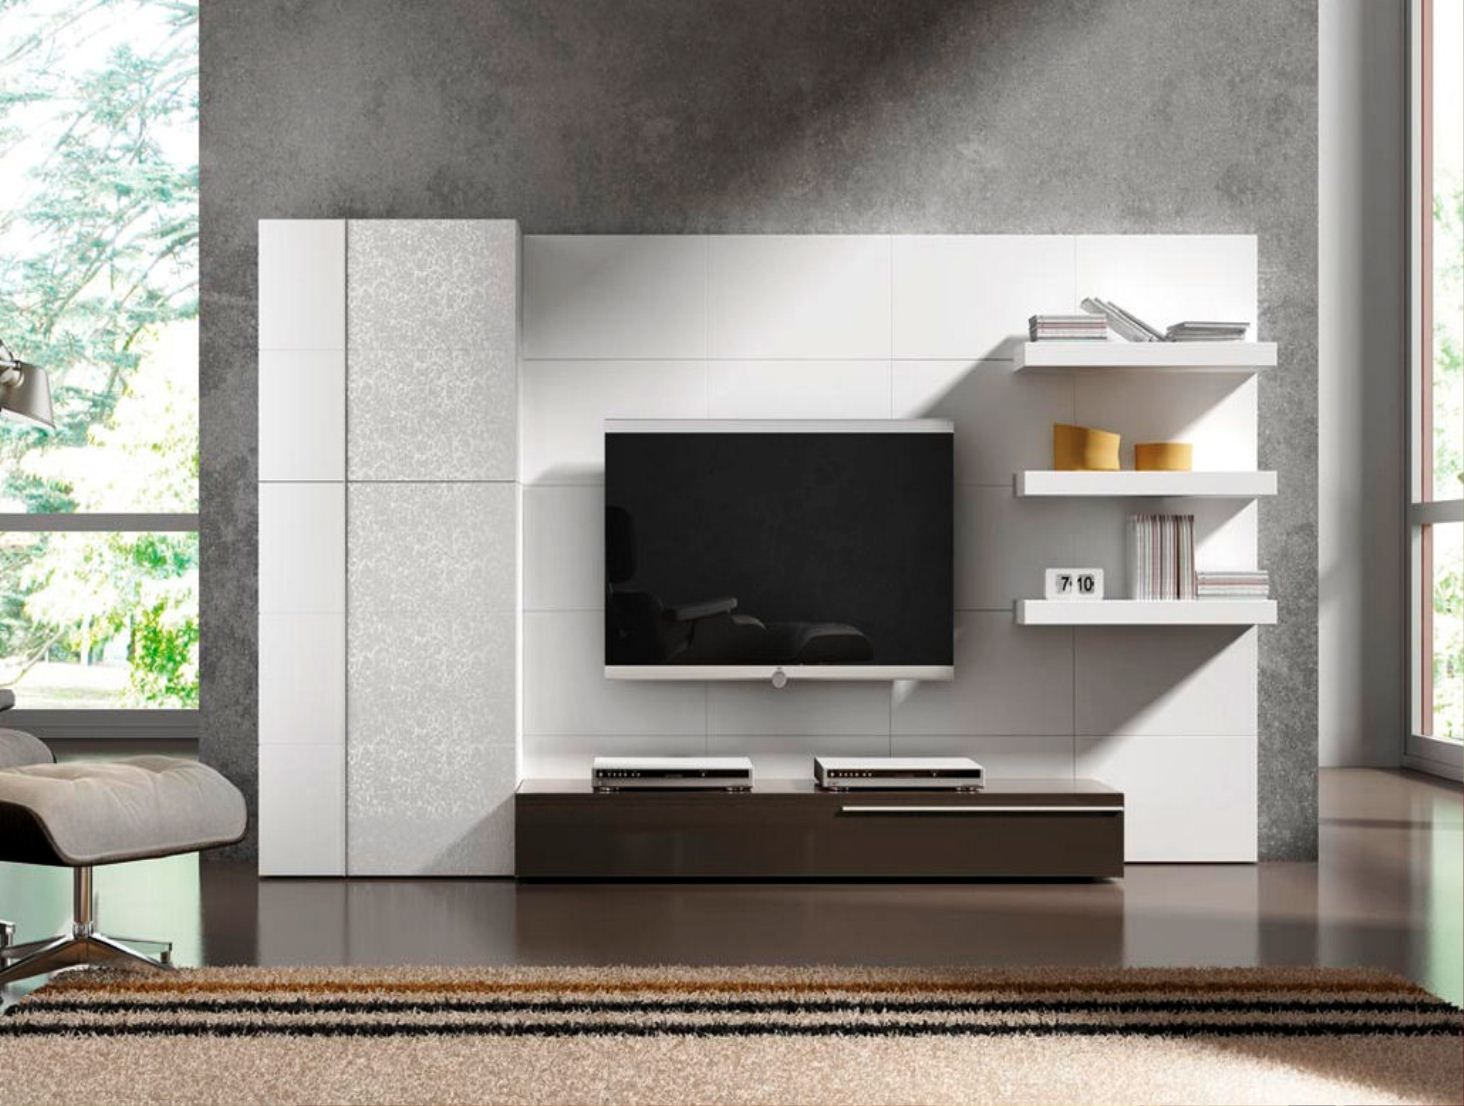 Modern Wall Unit Designs For Living Room  Best Paint For Interior Simple Best Wall Designs For Living Room Design Ideas